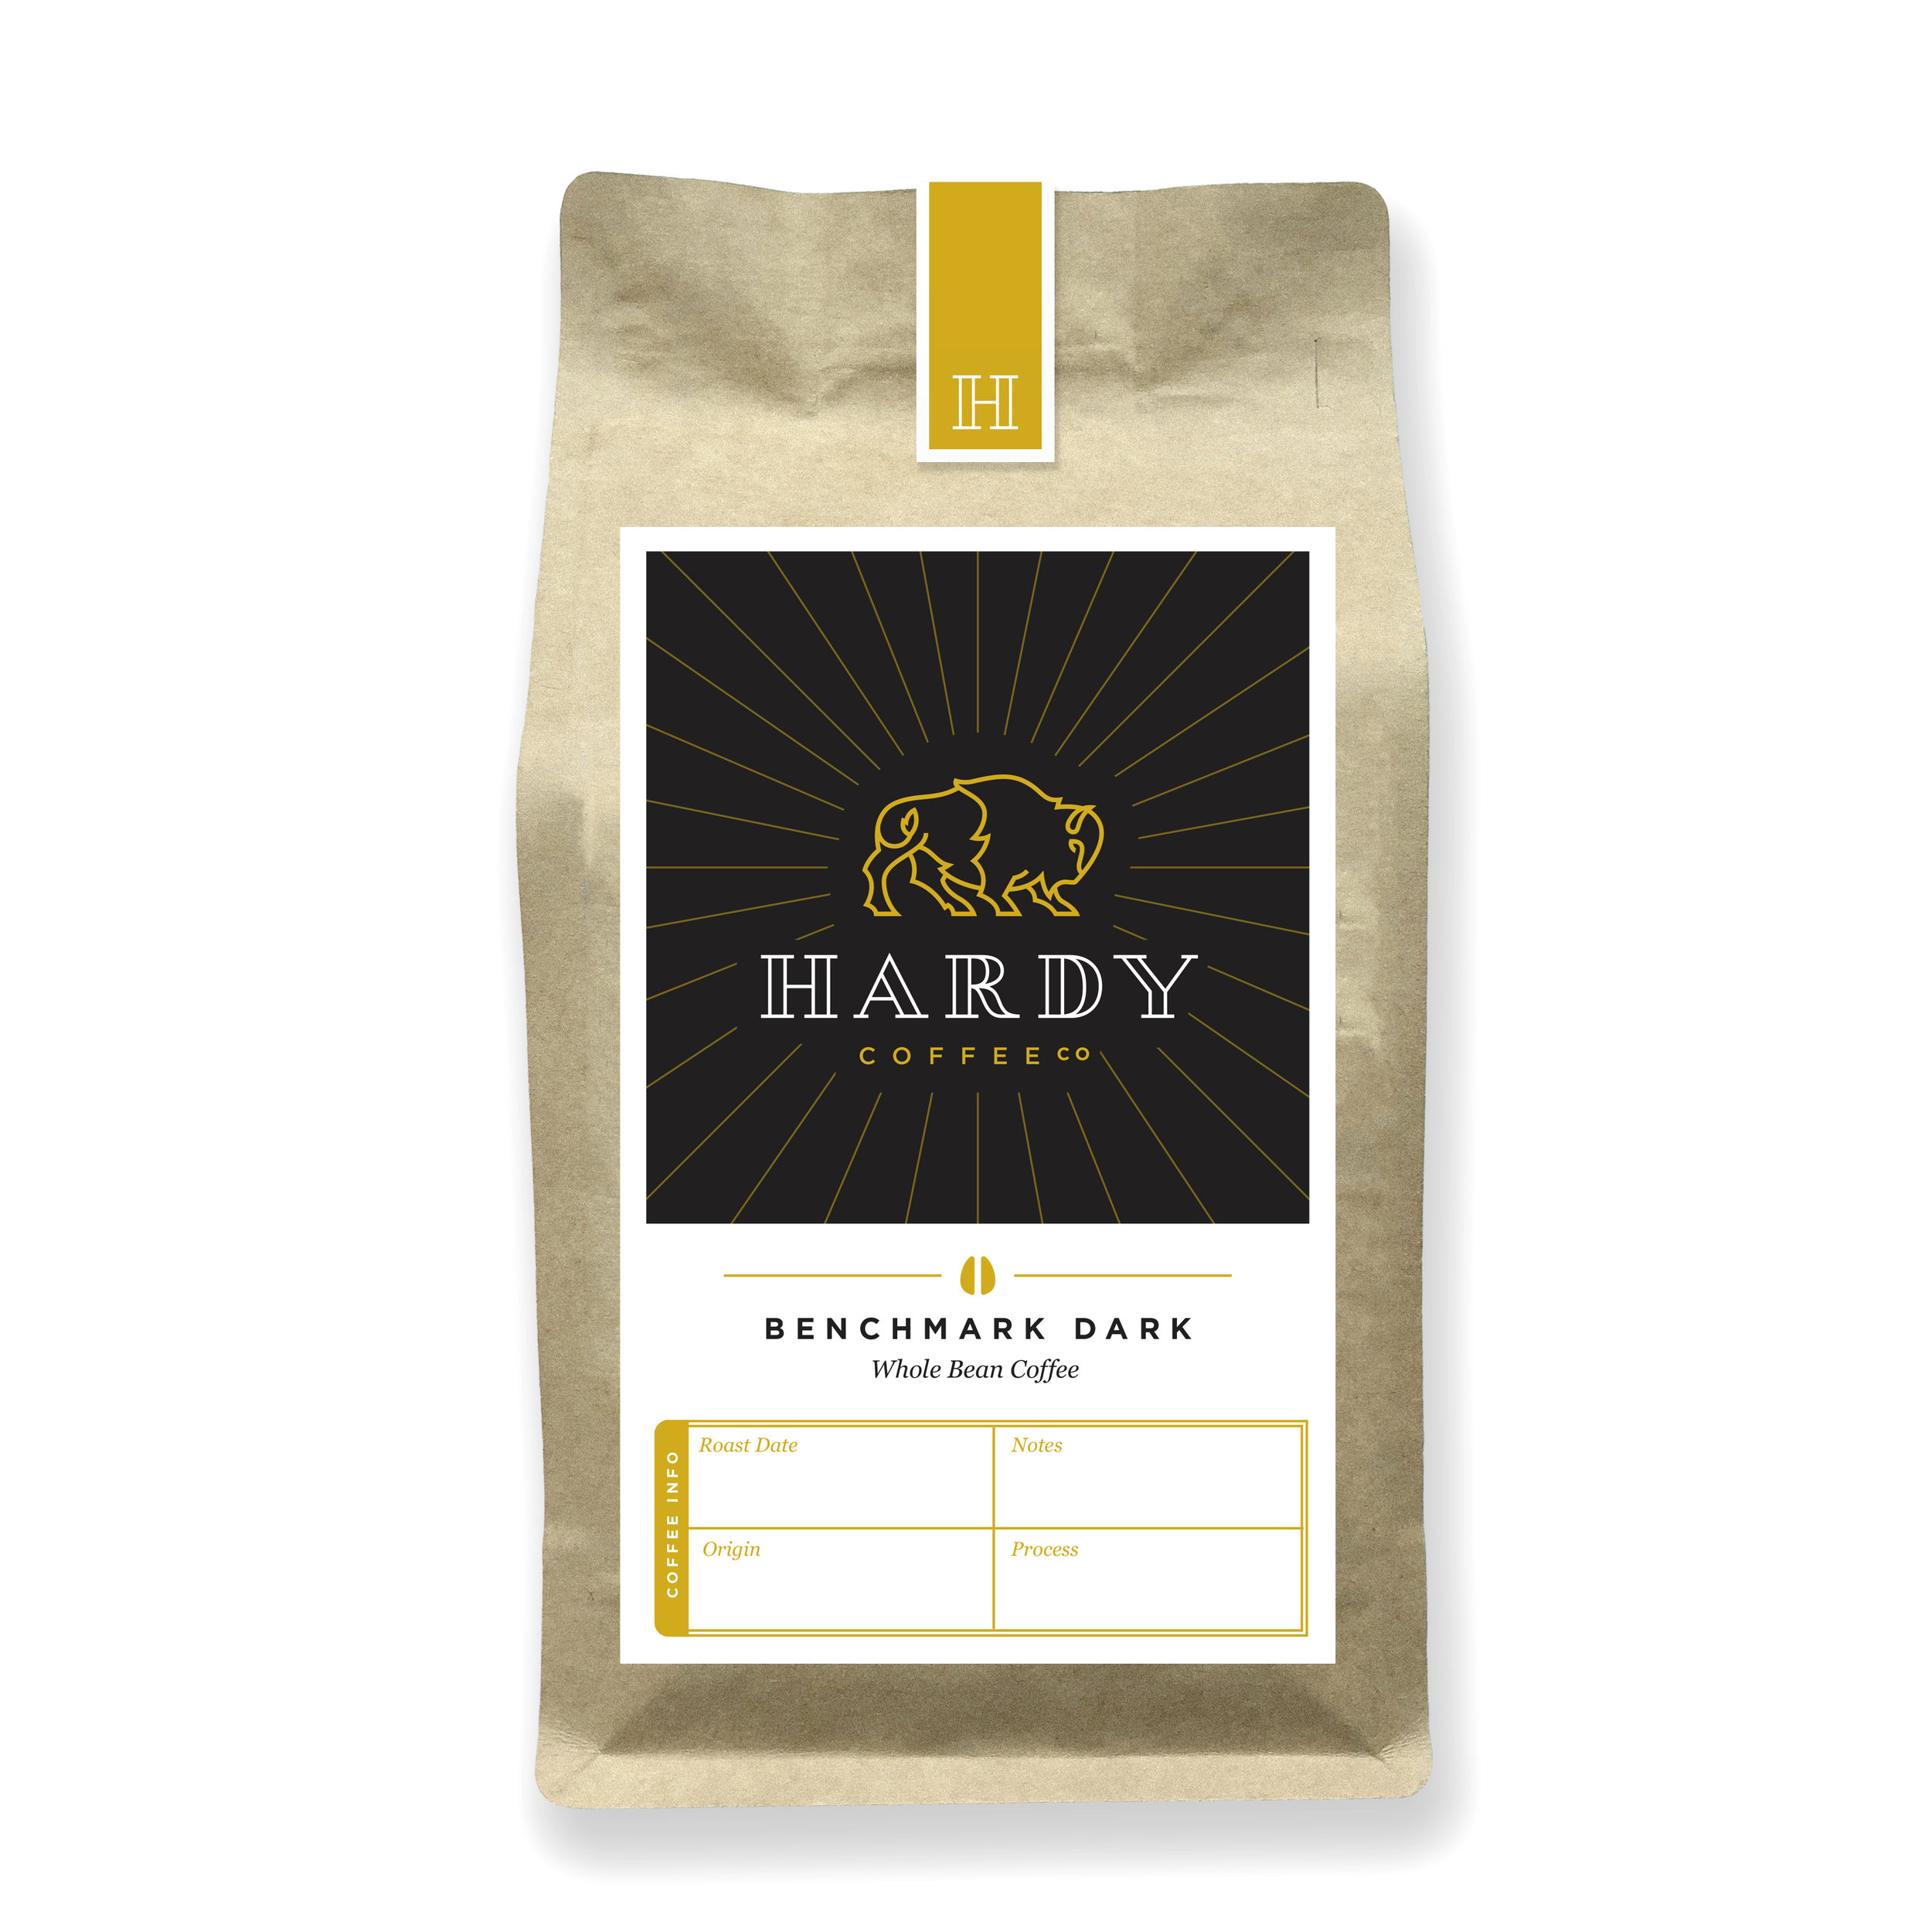 hardy_coffee_package_dark_2019.jpg